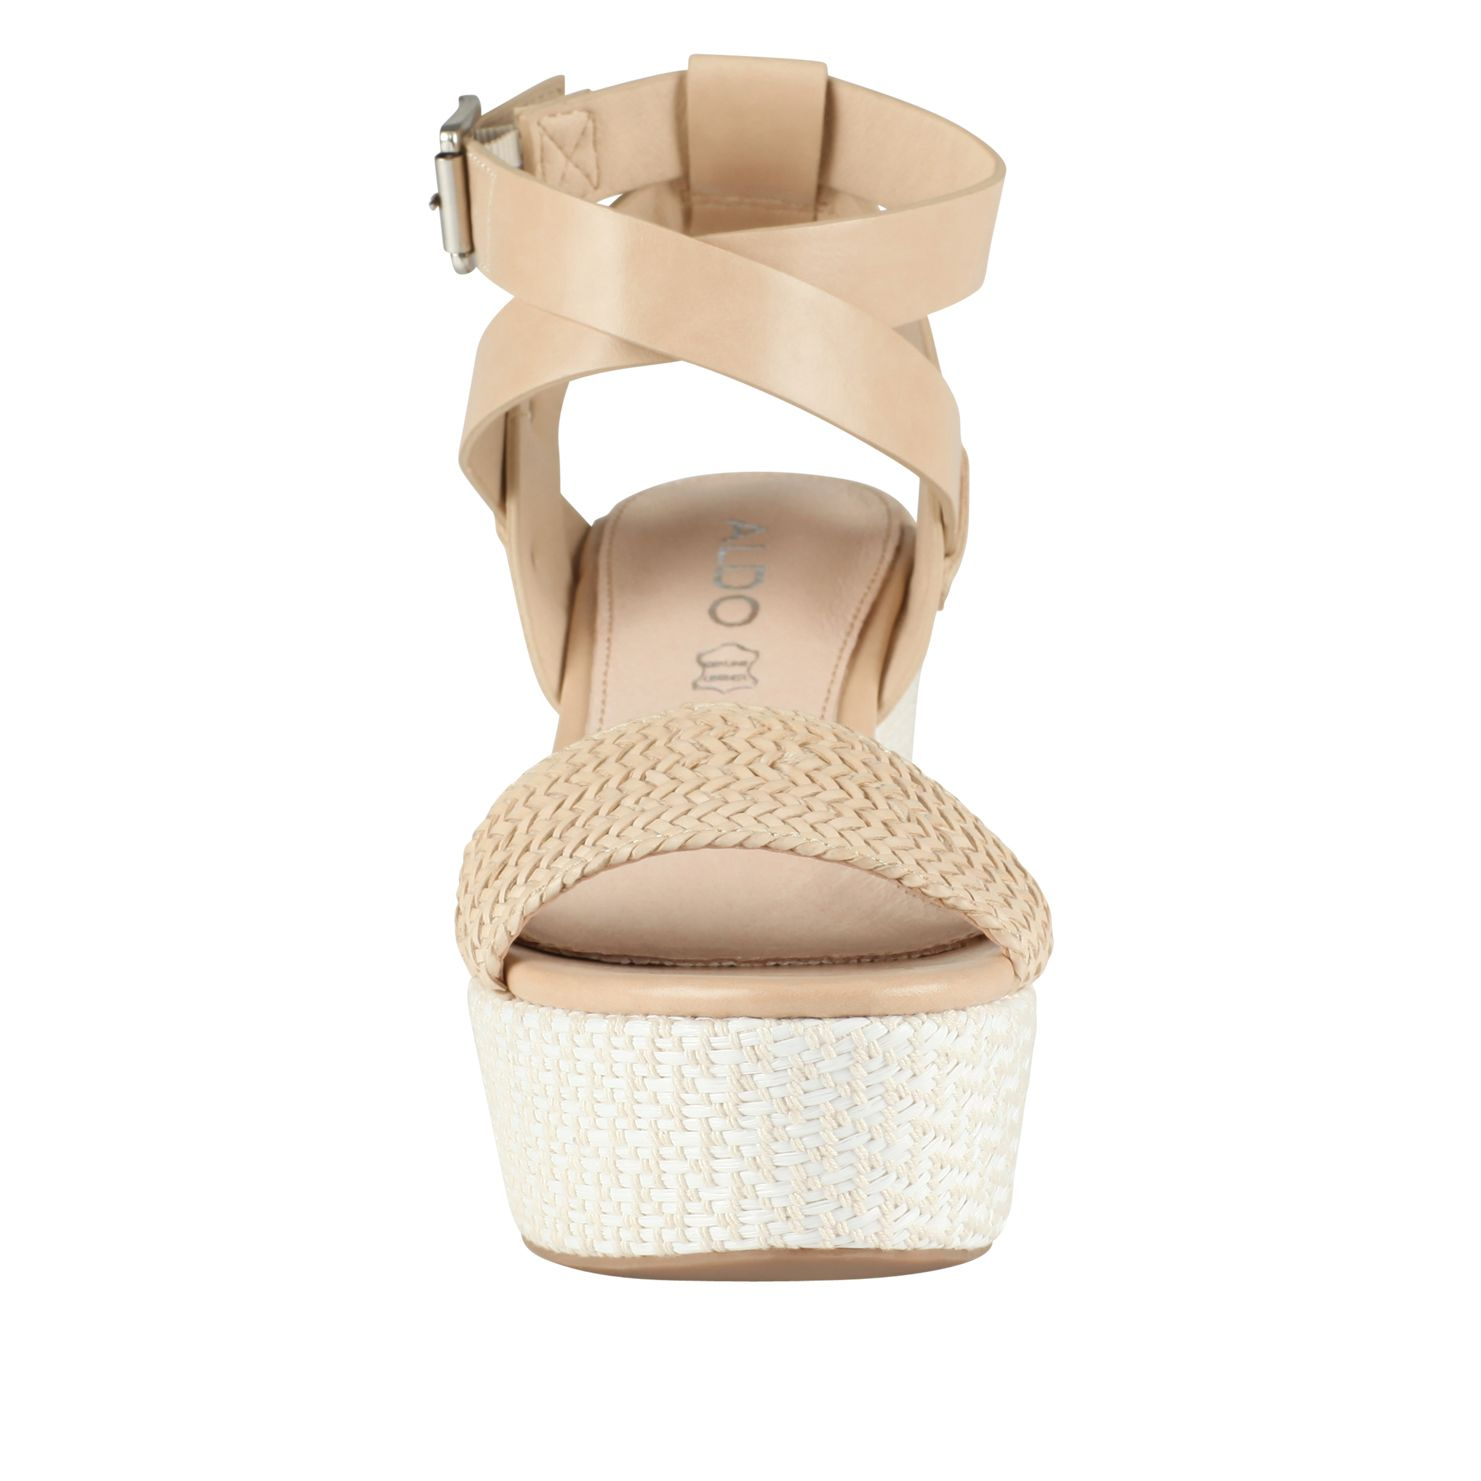 Zegliacco wedge strap high heel sandals